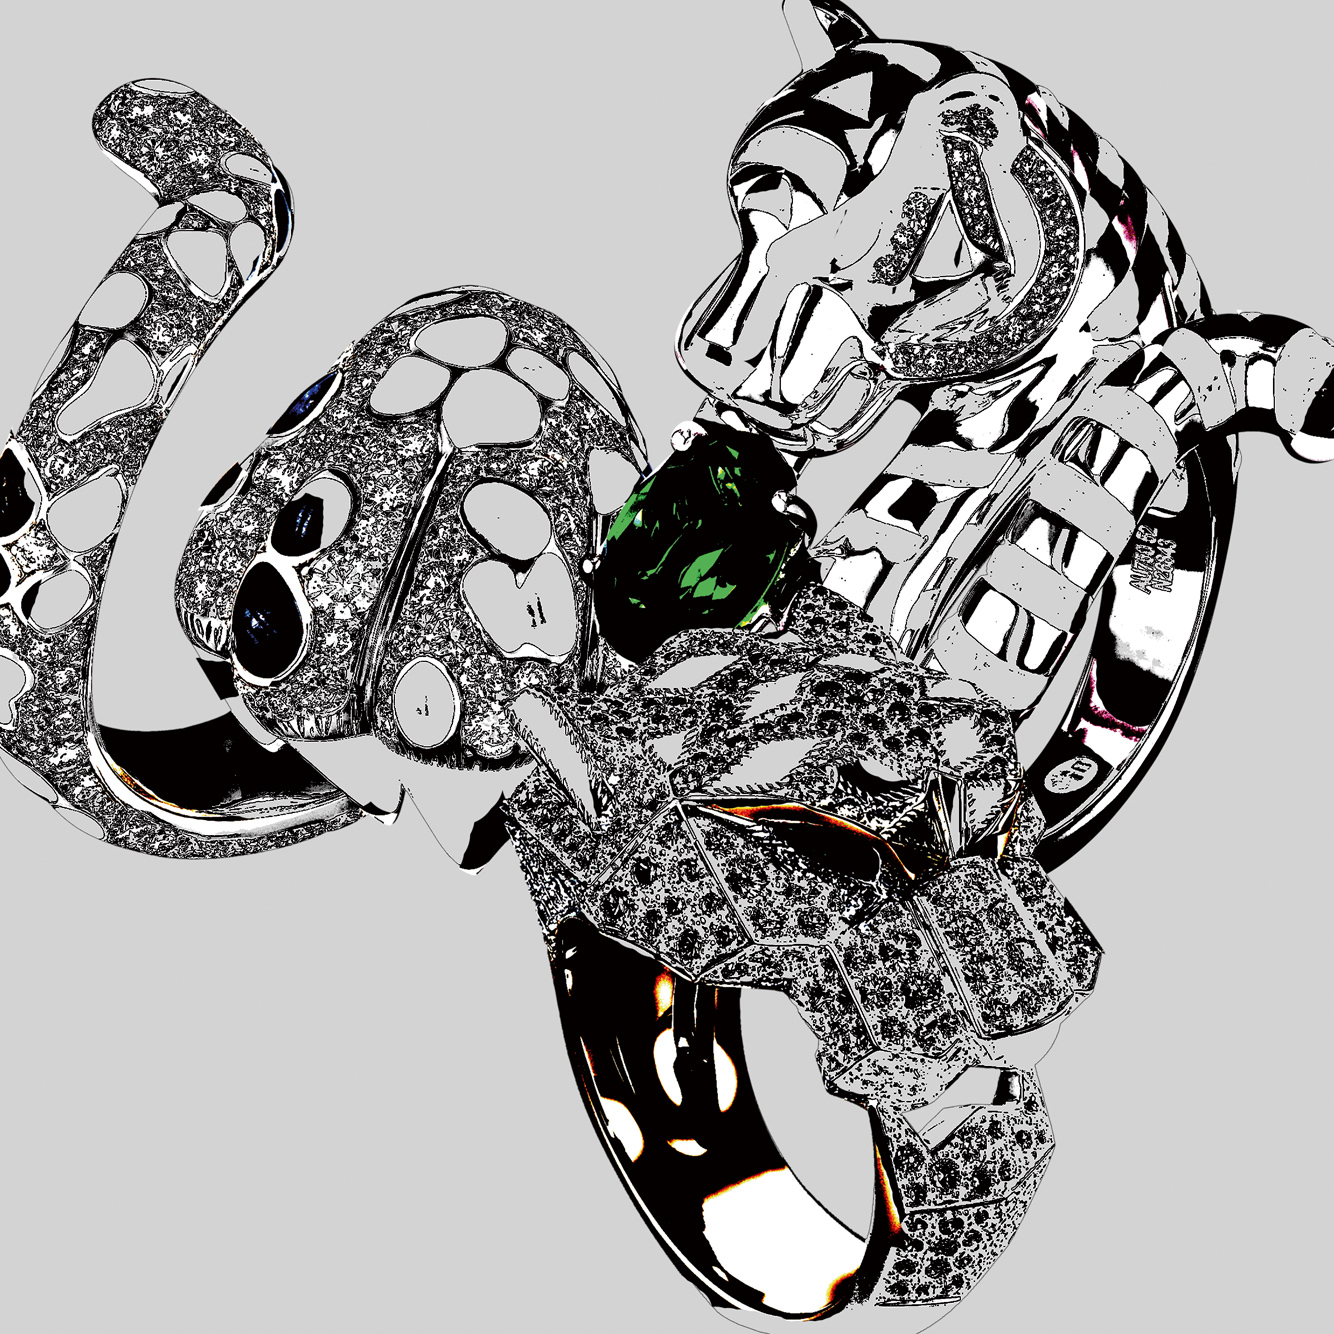 Dior, Cartier and Boucheron's feline jewelry